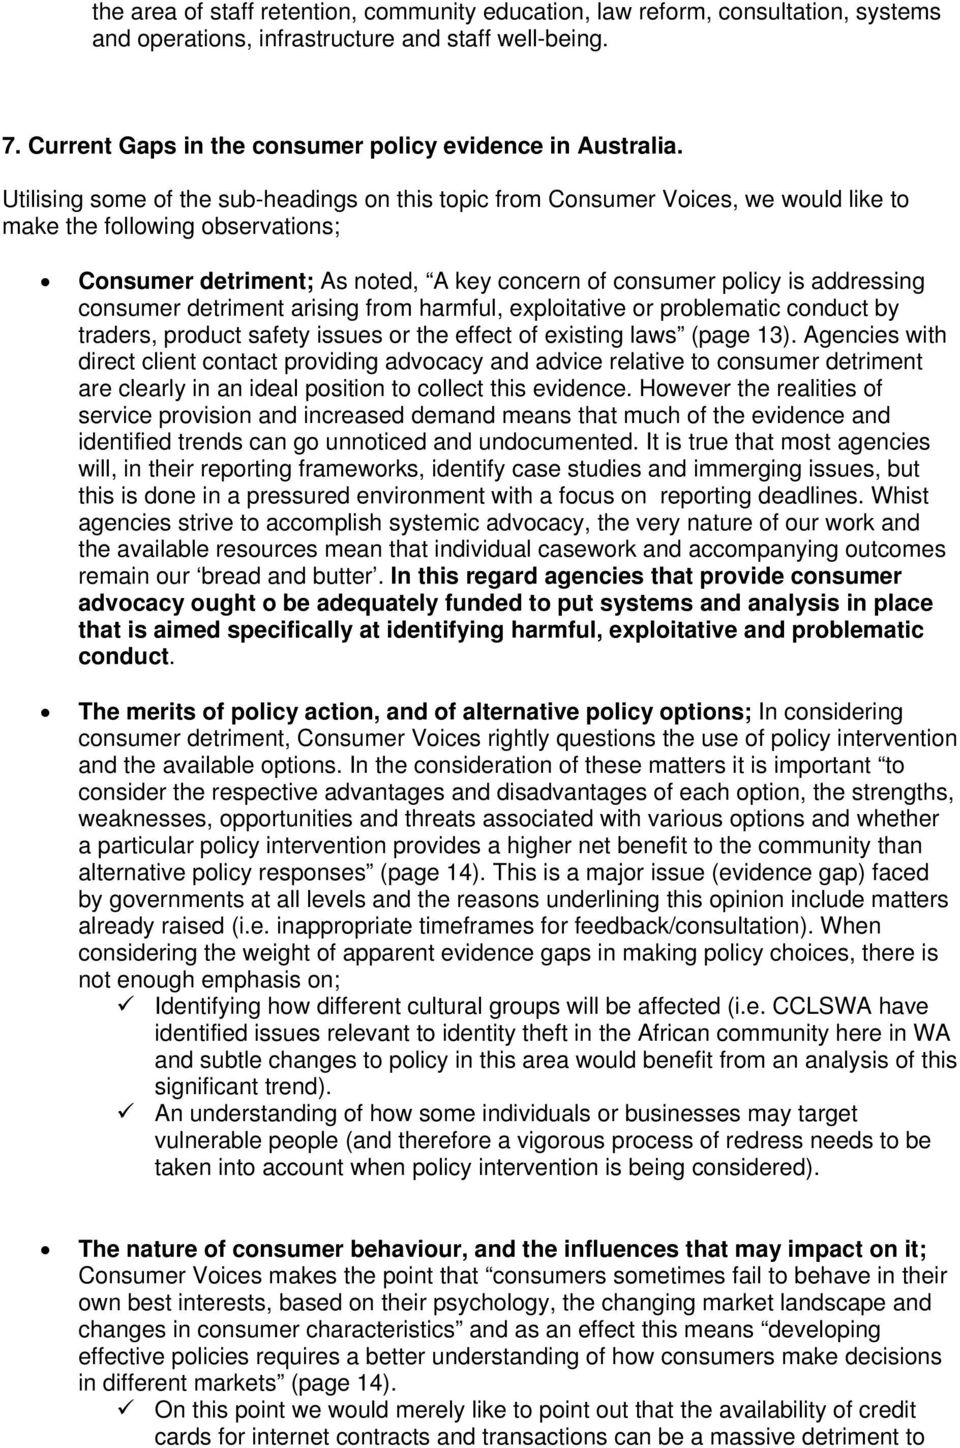 consumer detriment arising from harmful, exploitative or problematic conduct by traders, product safety issues or the effect of existing laws (page 13).